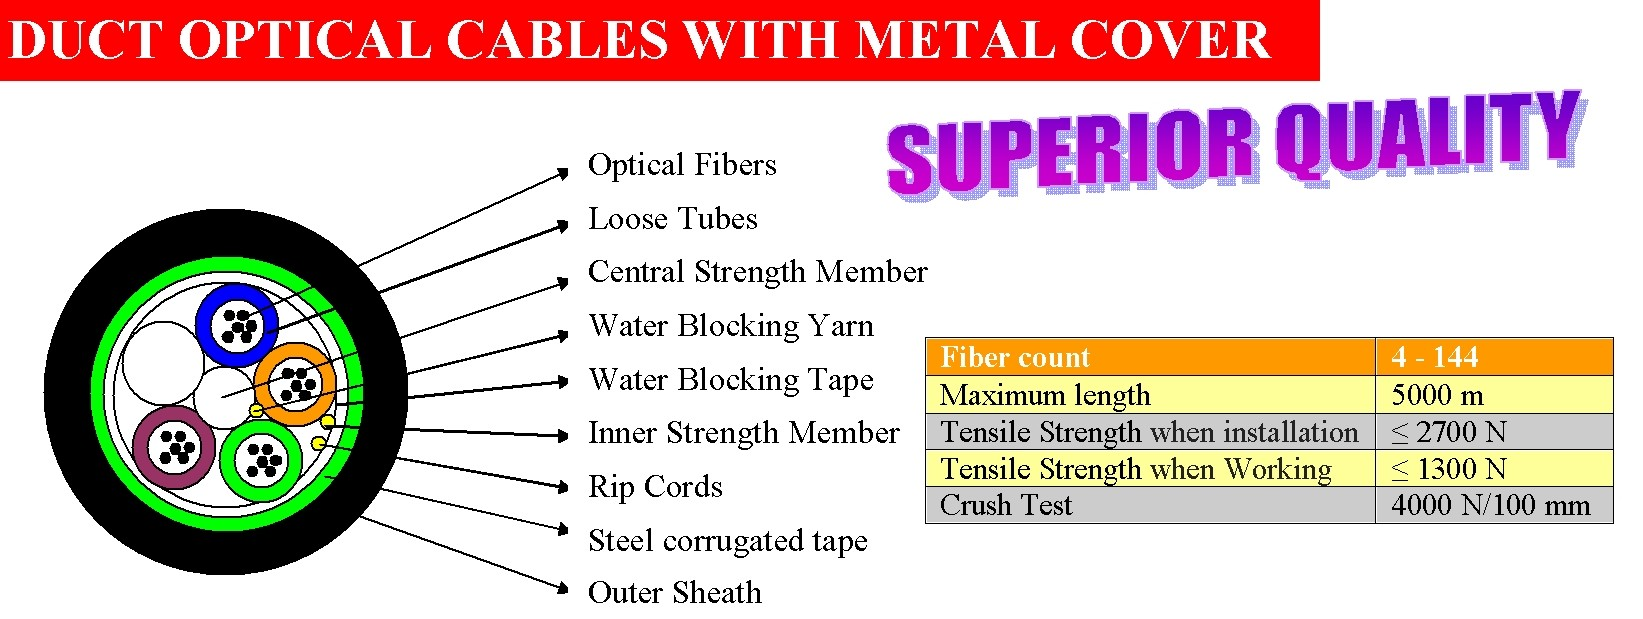 DUCT OPTICAL CABLES WITH METAL COVER